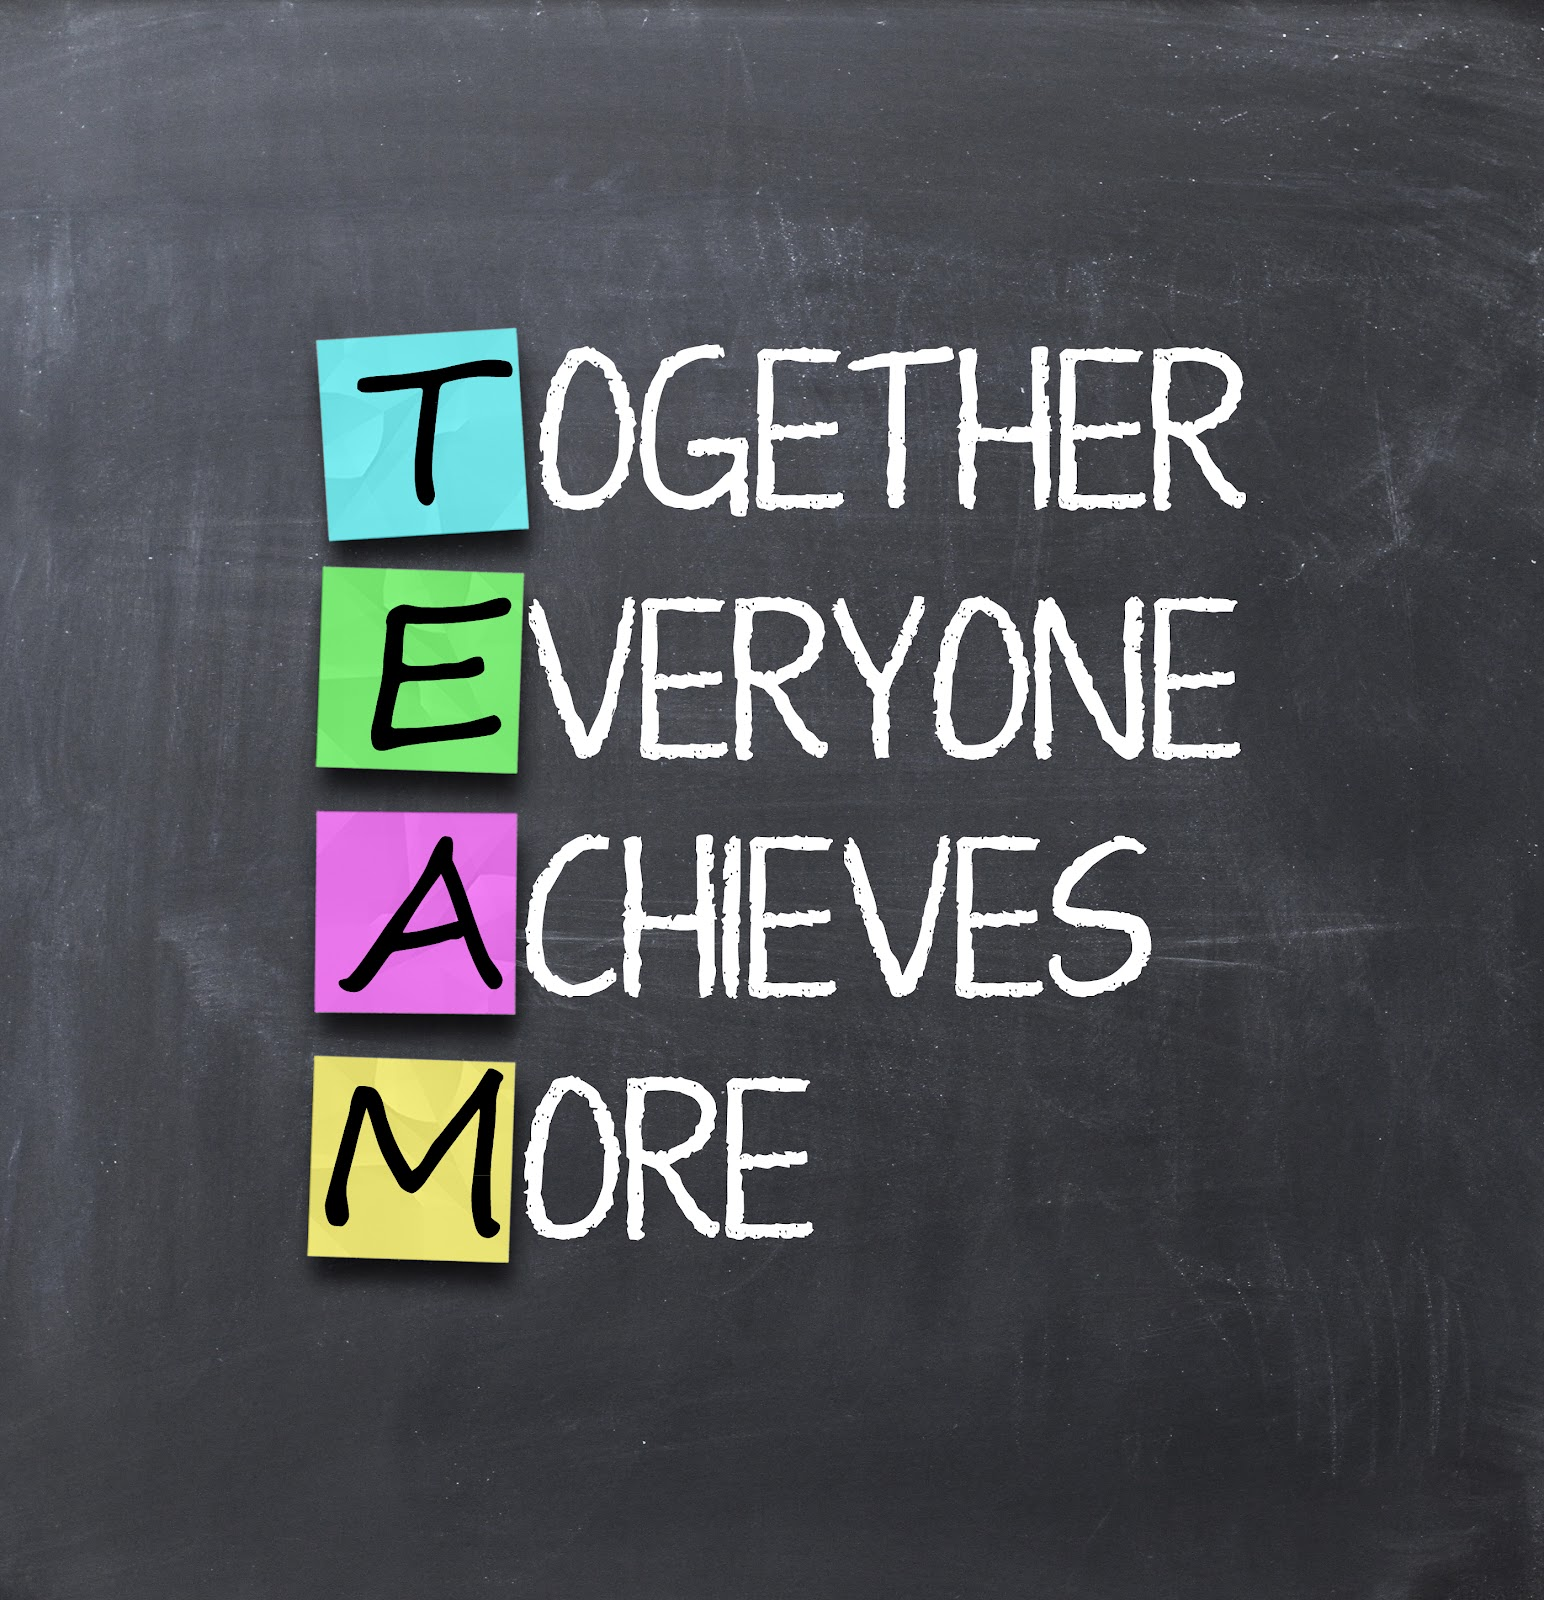 understand-the-importance-of-teamwork